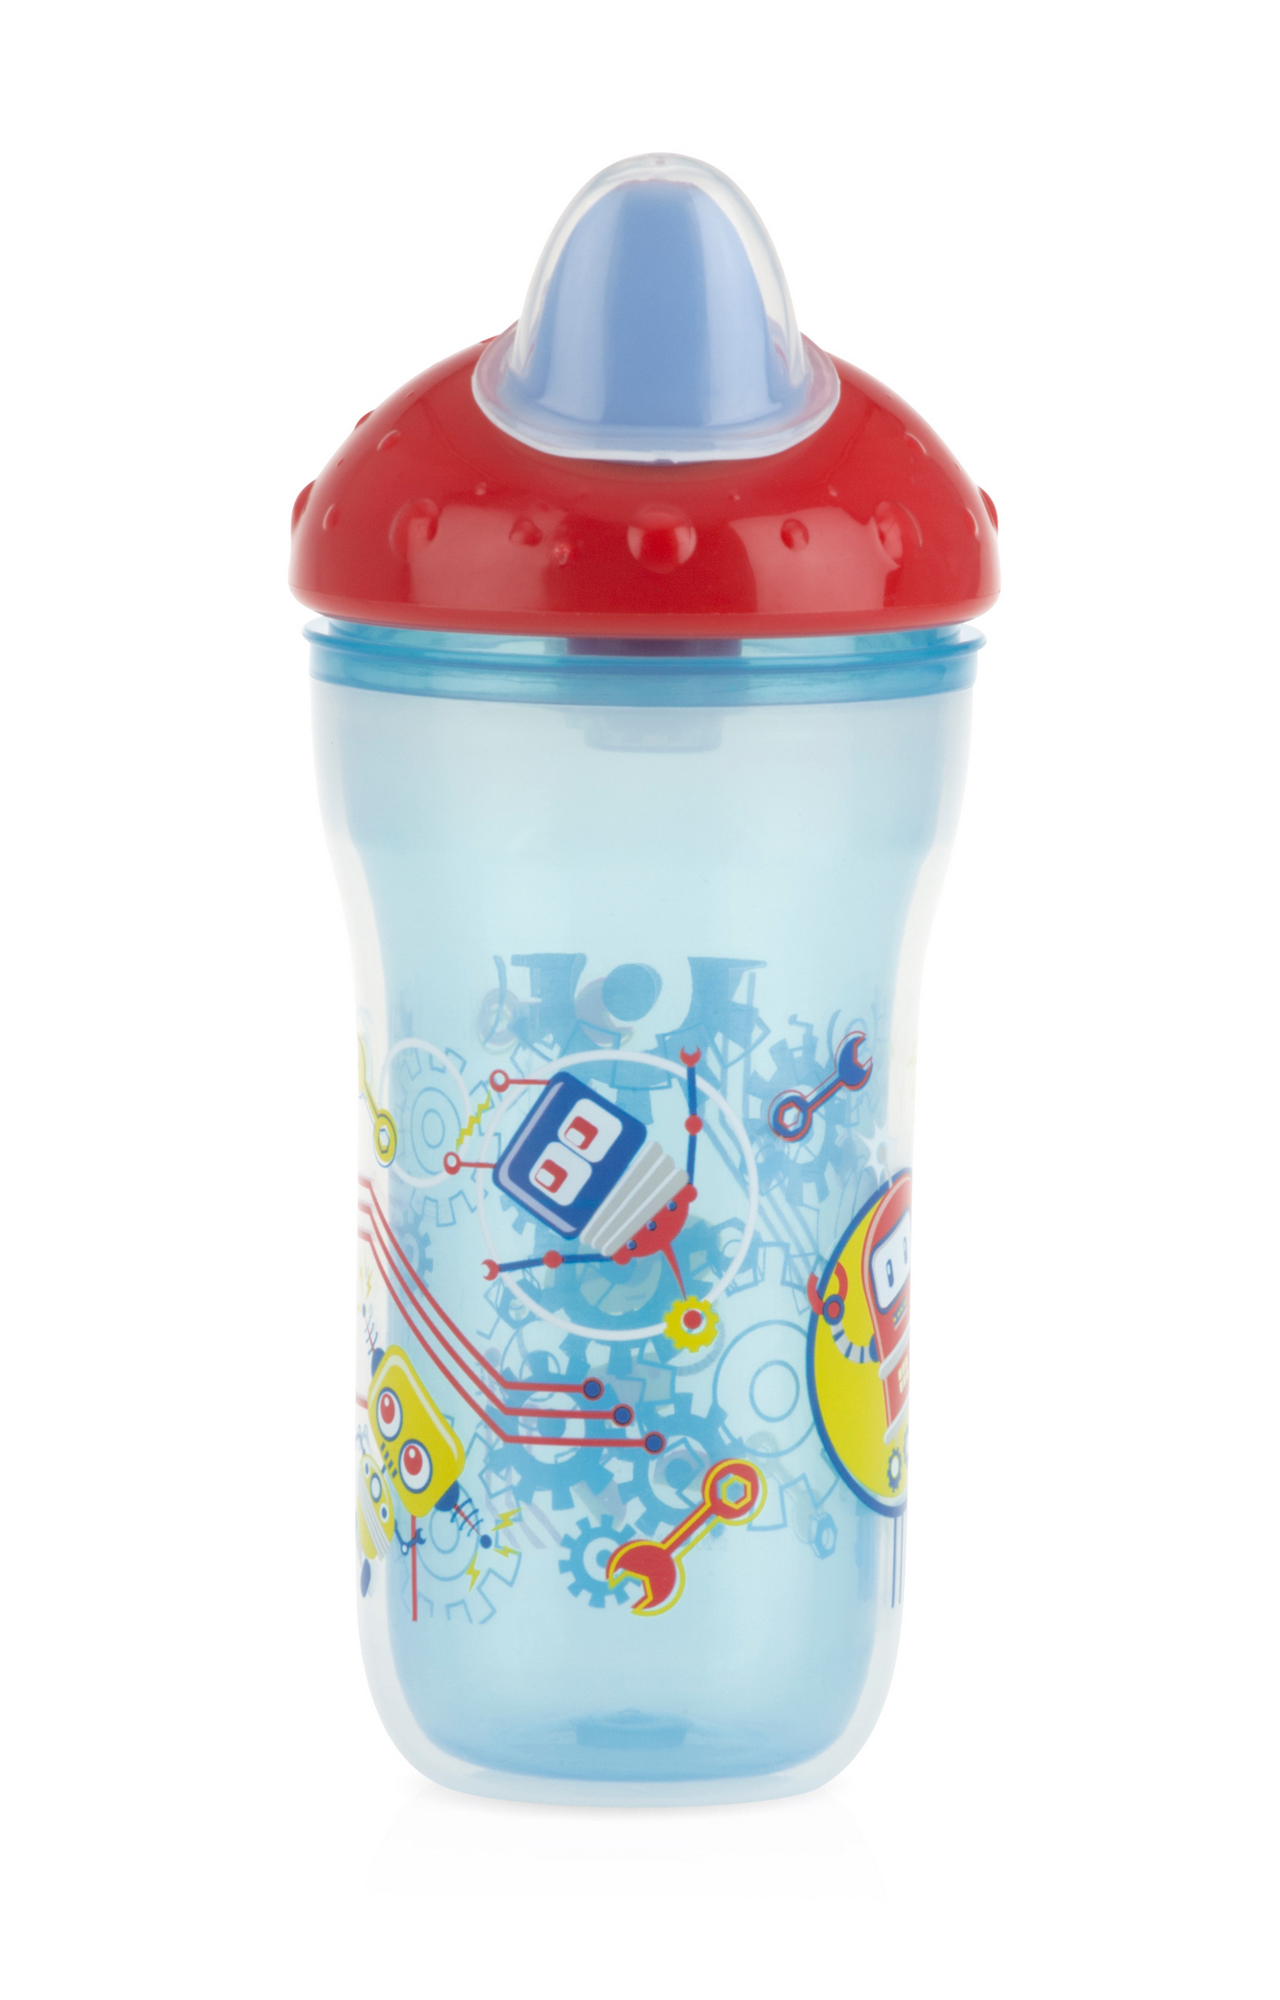 Mothercare | Nuby Insulated Soft Sipper Spout 270ml Blue